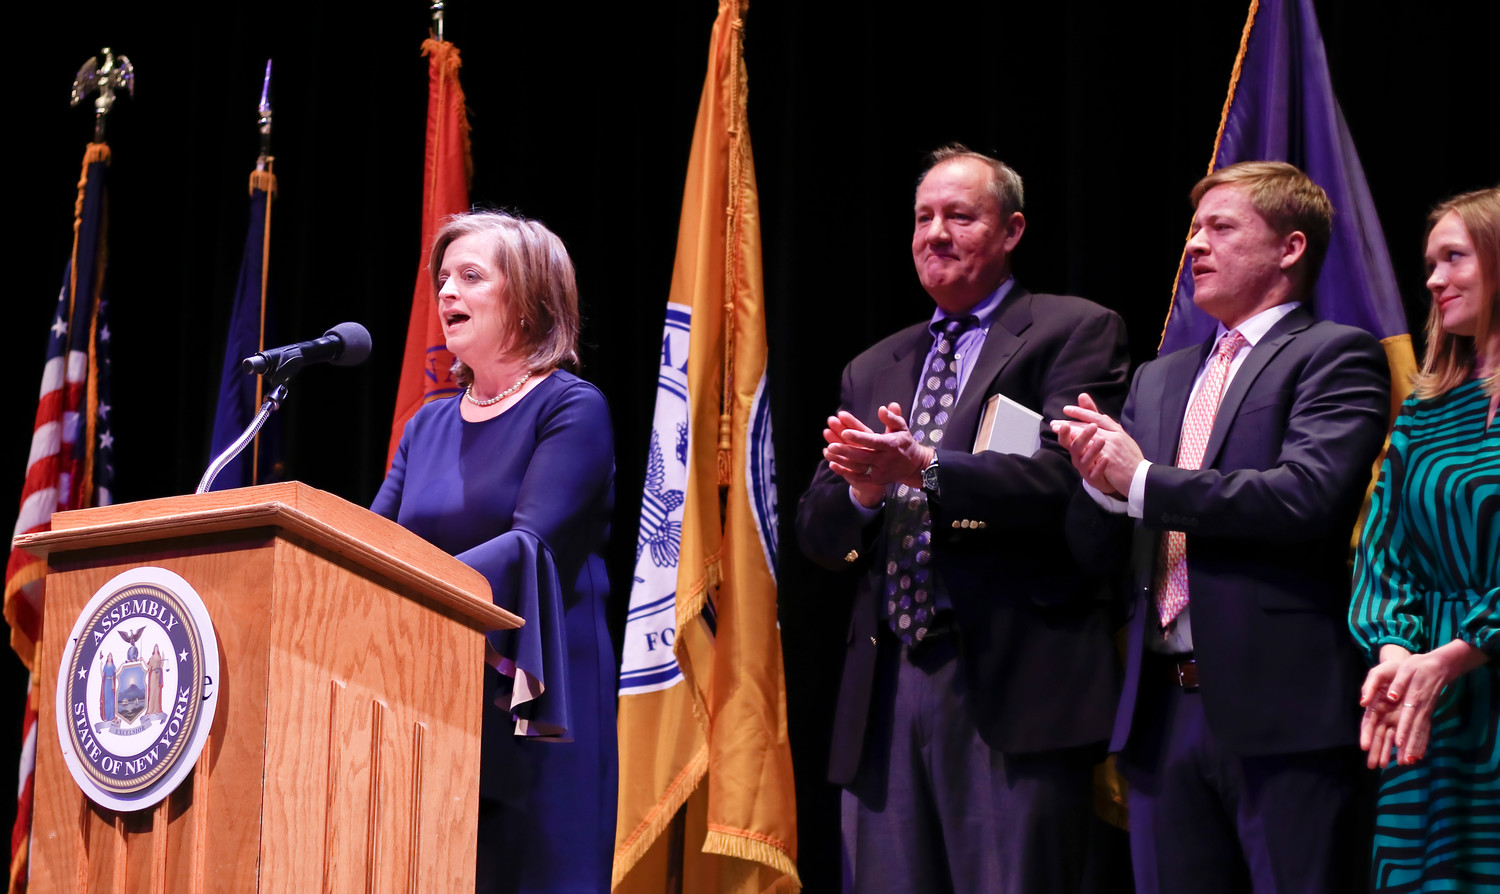 State Assemblywoman Judy Griffin, left, addressed the crowd after being sworn in at Molloy College's Madison Theatre on Jan. 13.